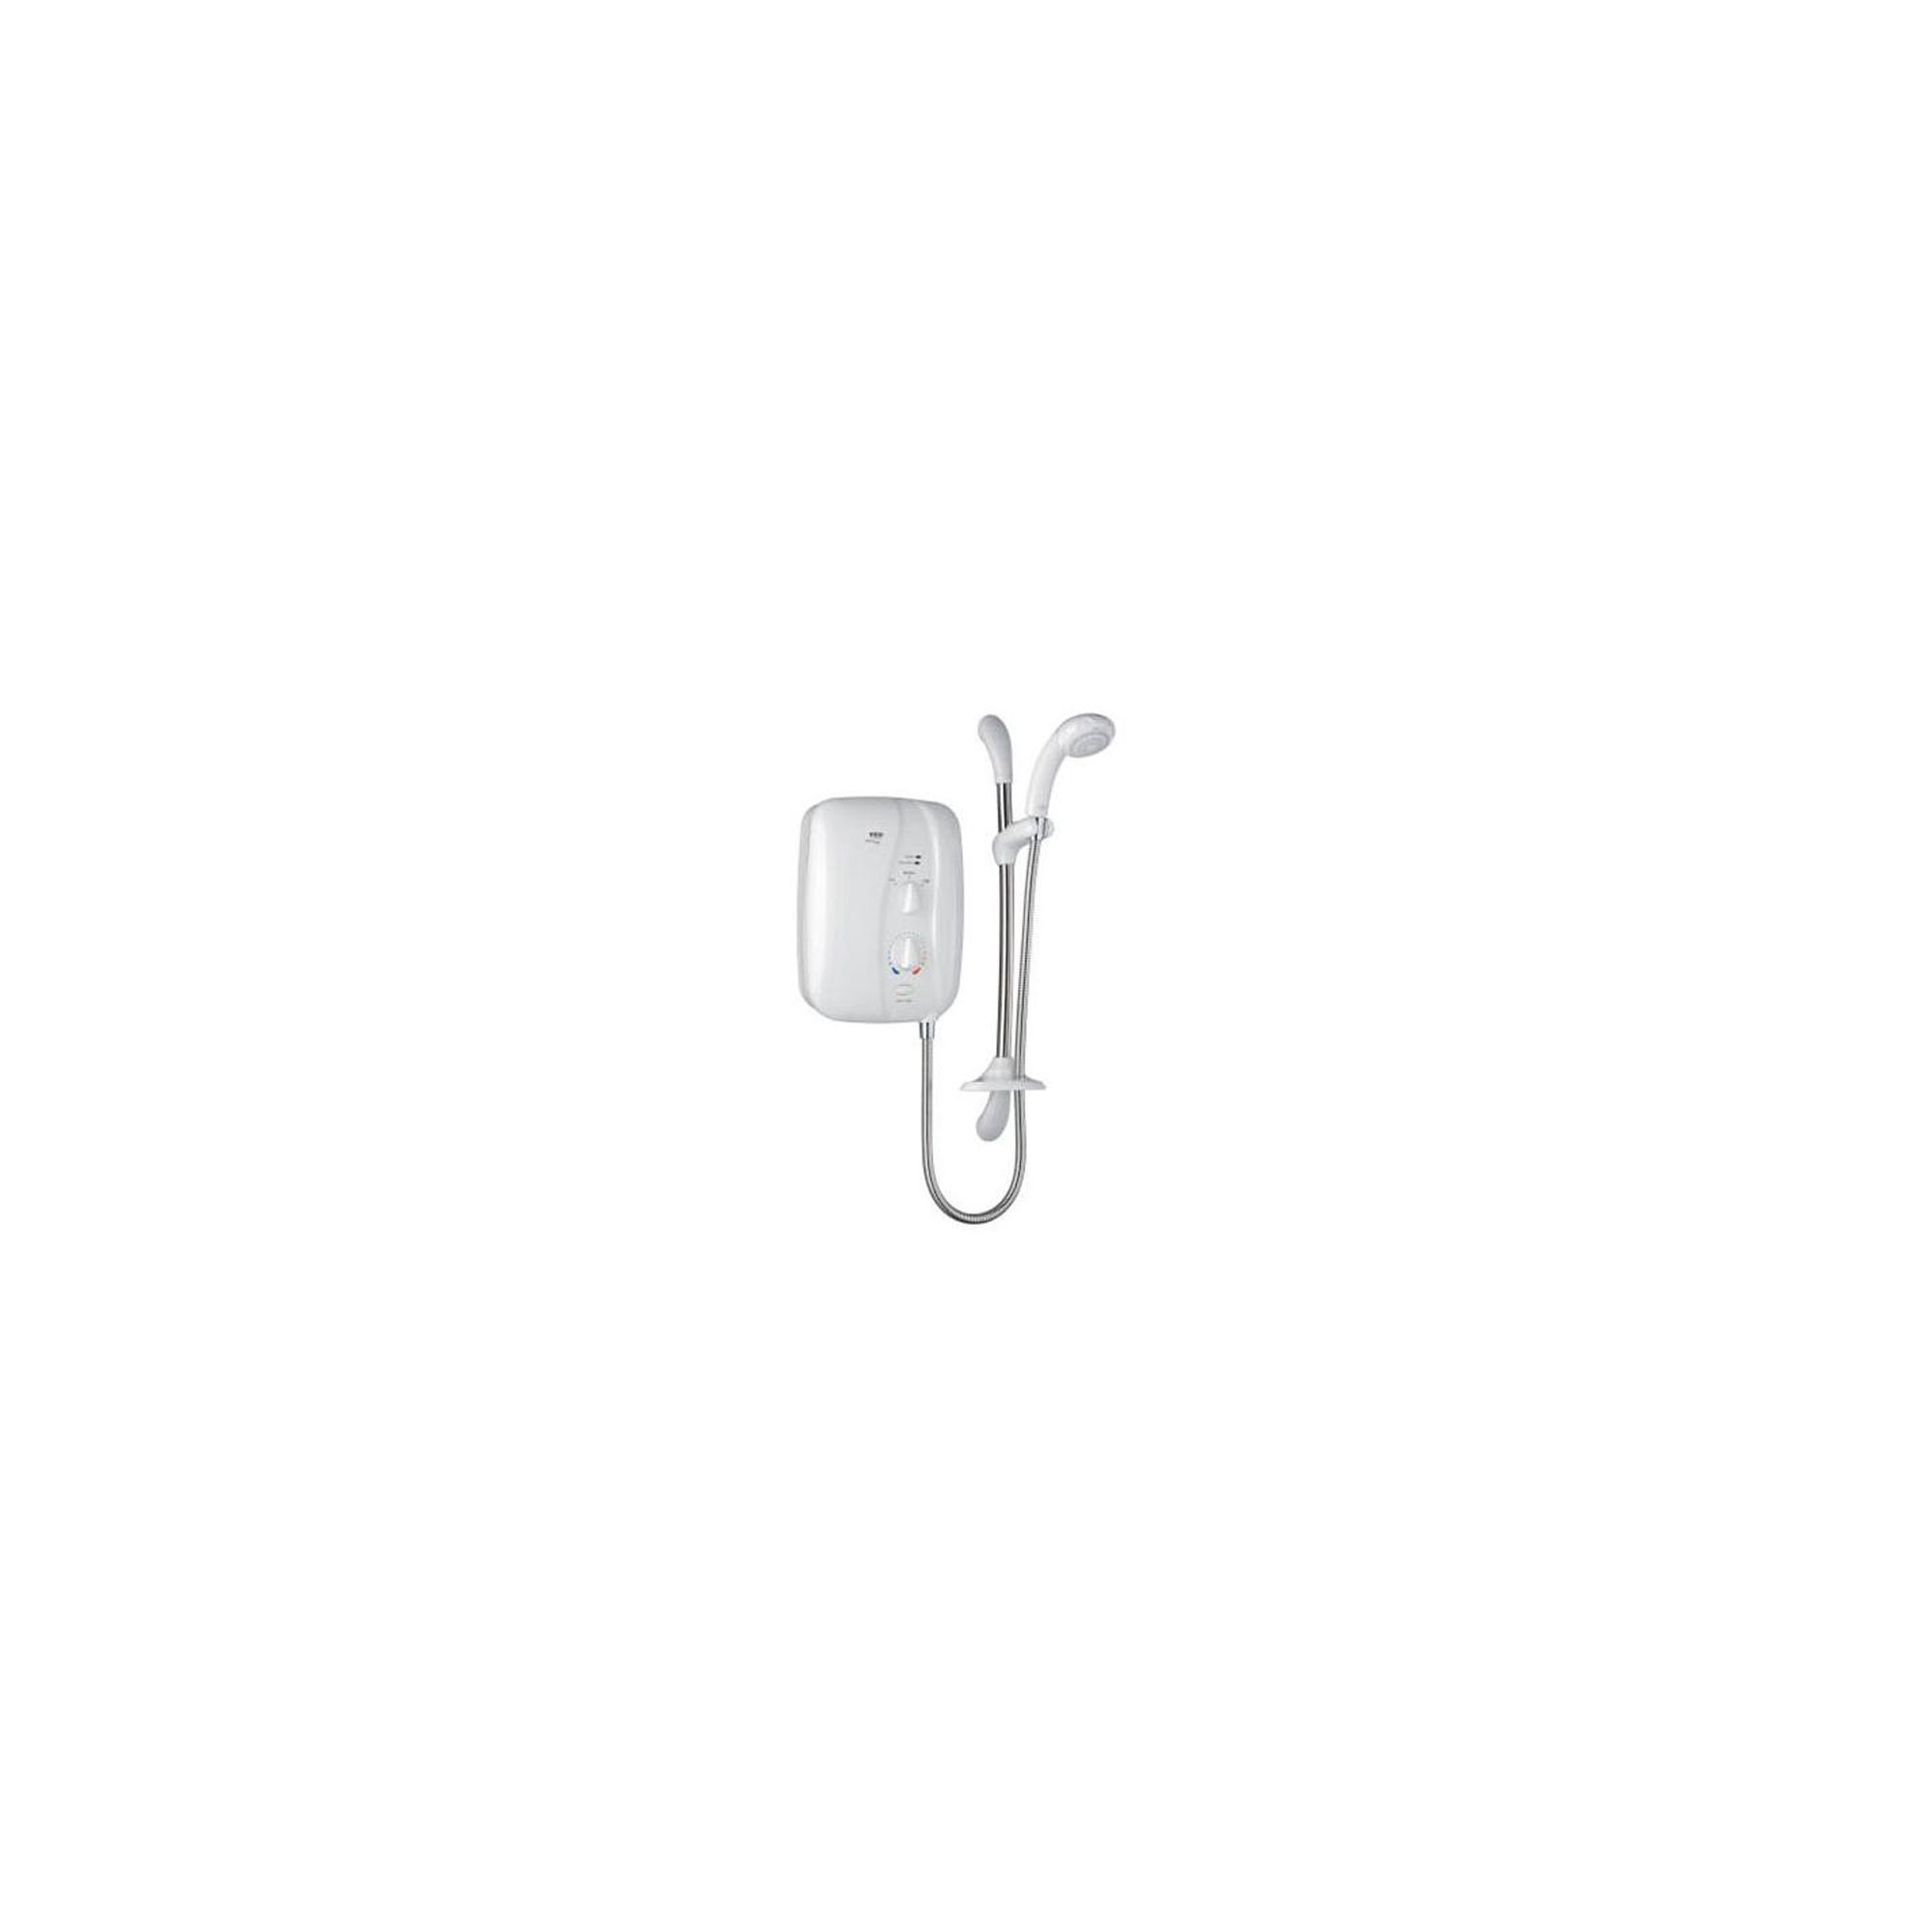 Mira Elite ST 9.8 kW Electric Shower with Sensi-Flo, White/Chrome at Tesco Direct